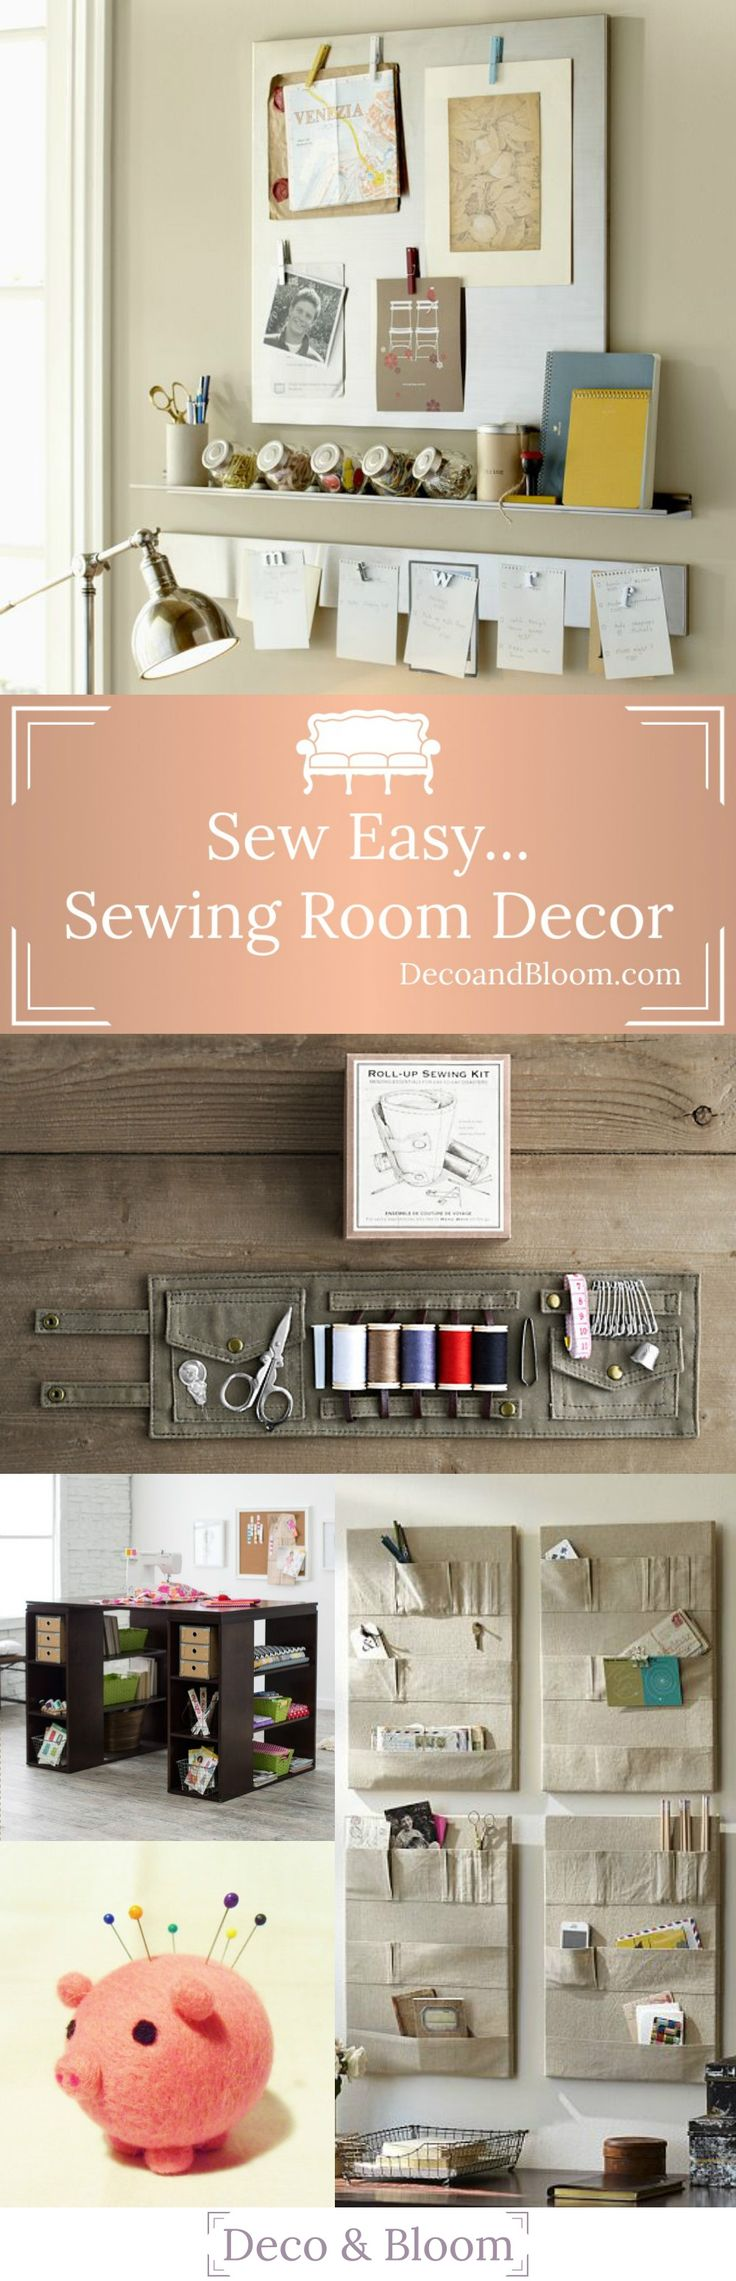 180 best craft room organization images on pinterest storage sewing room home decor